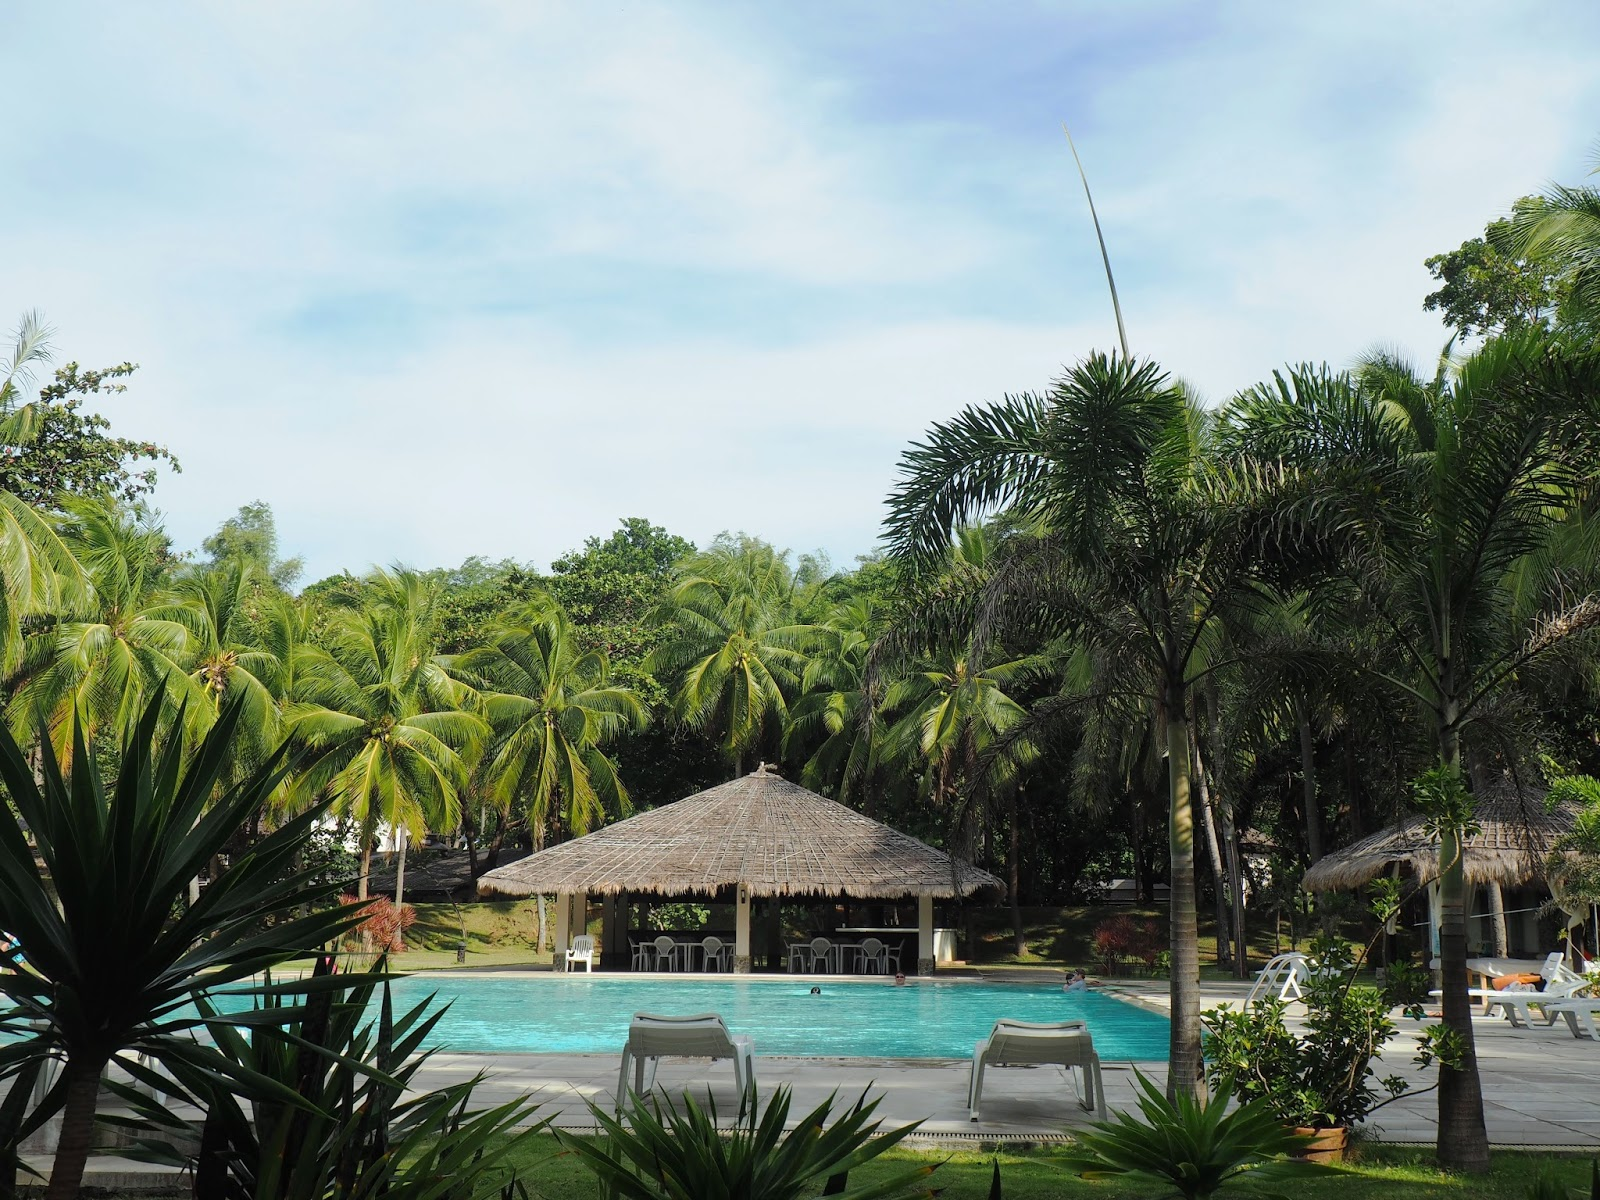 Vinatraveler 39 S Blog Montemar Beach Club Amazing Hidden Resort In Bagac Bataan Philippines